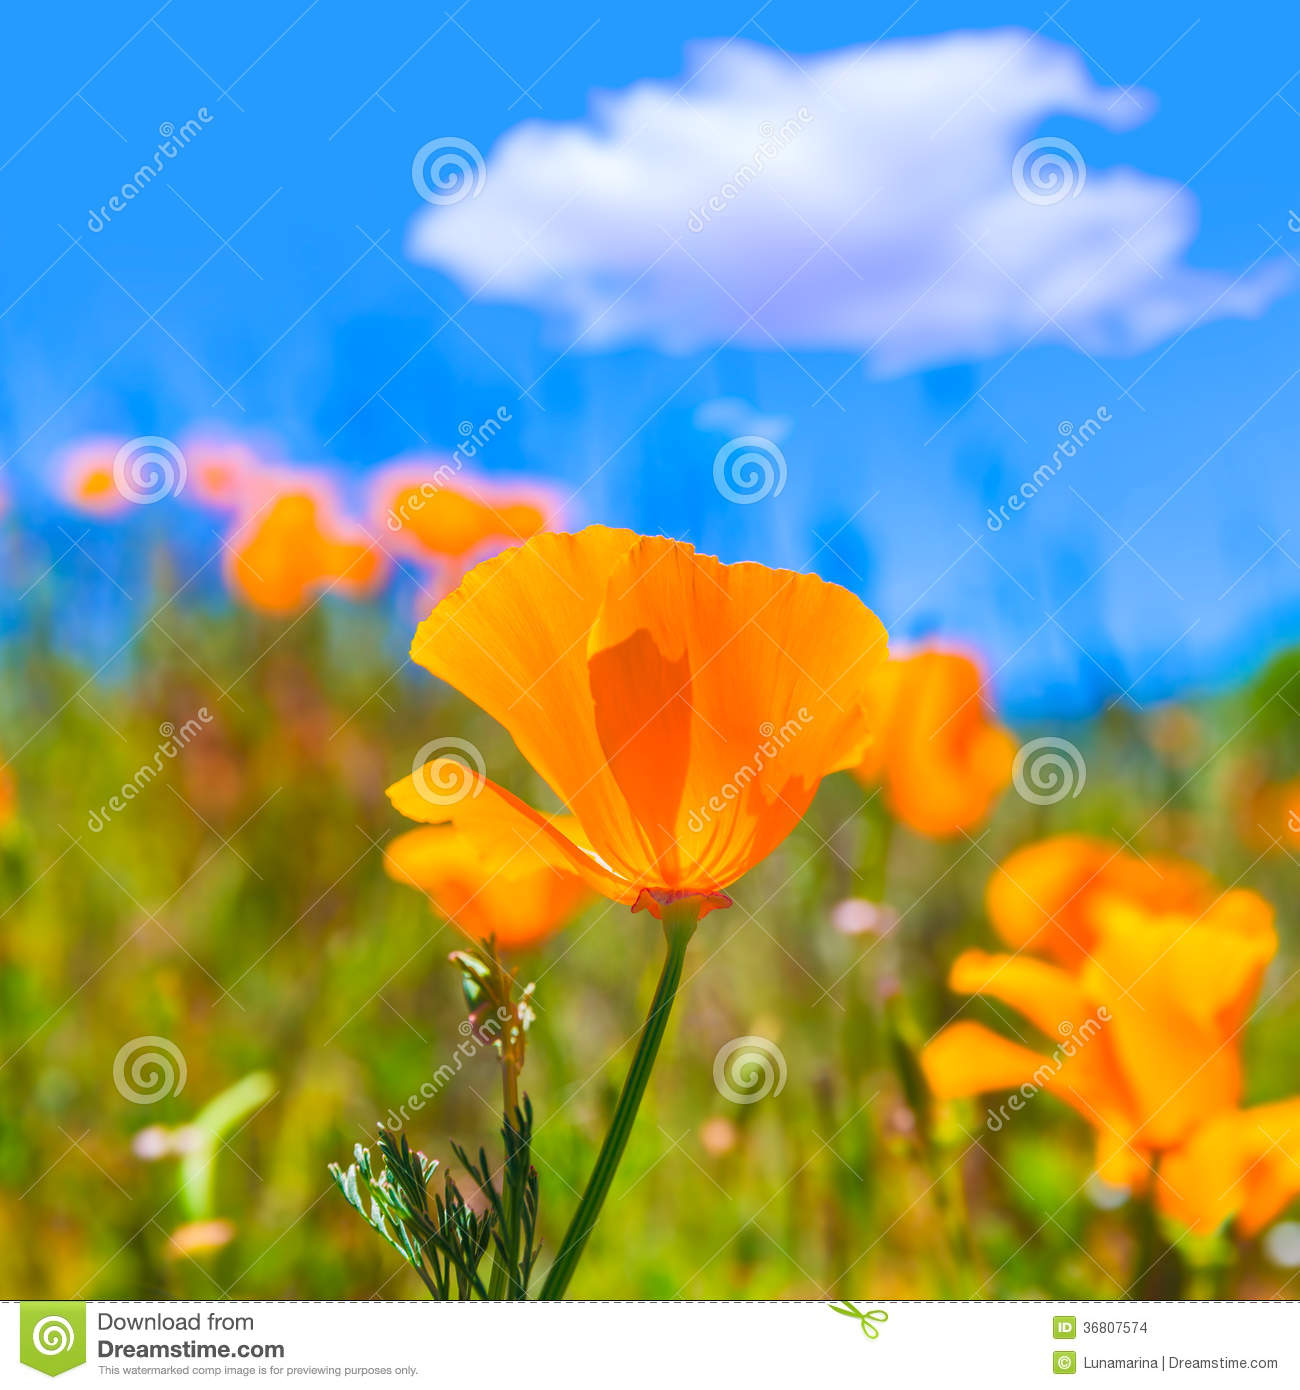 Poppies poppy flowers in orange at california spring fields stock download poppies poppy flowers in orange at california spring fields stock photo image of flora mightylinksfo